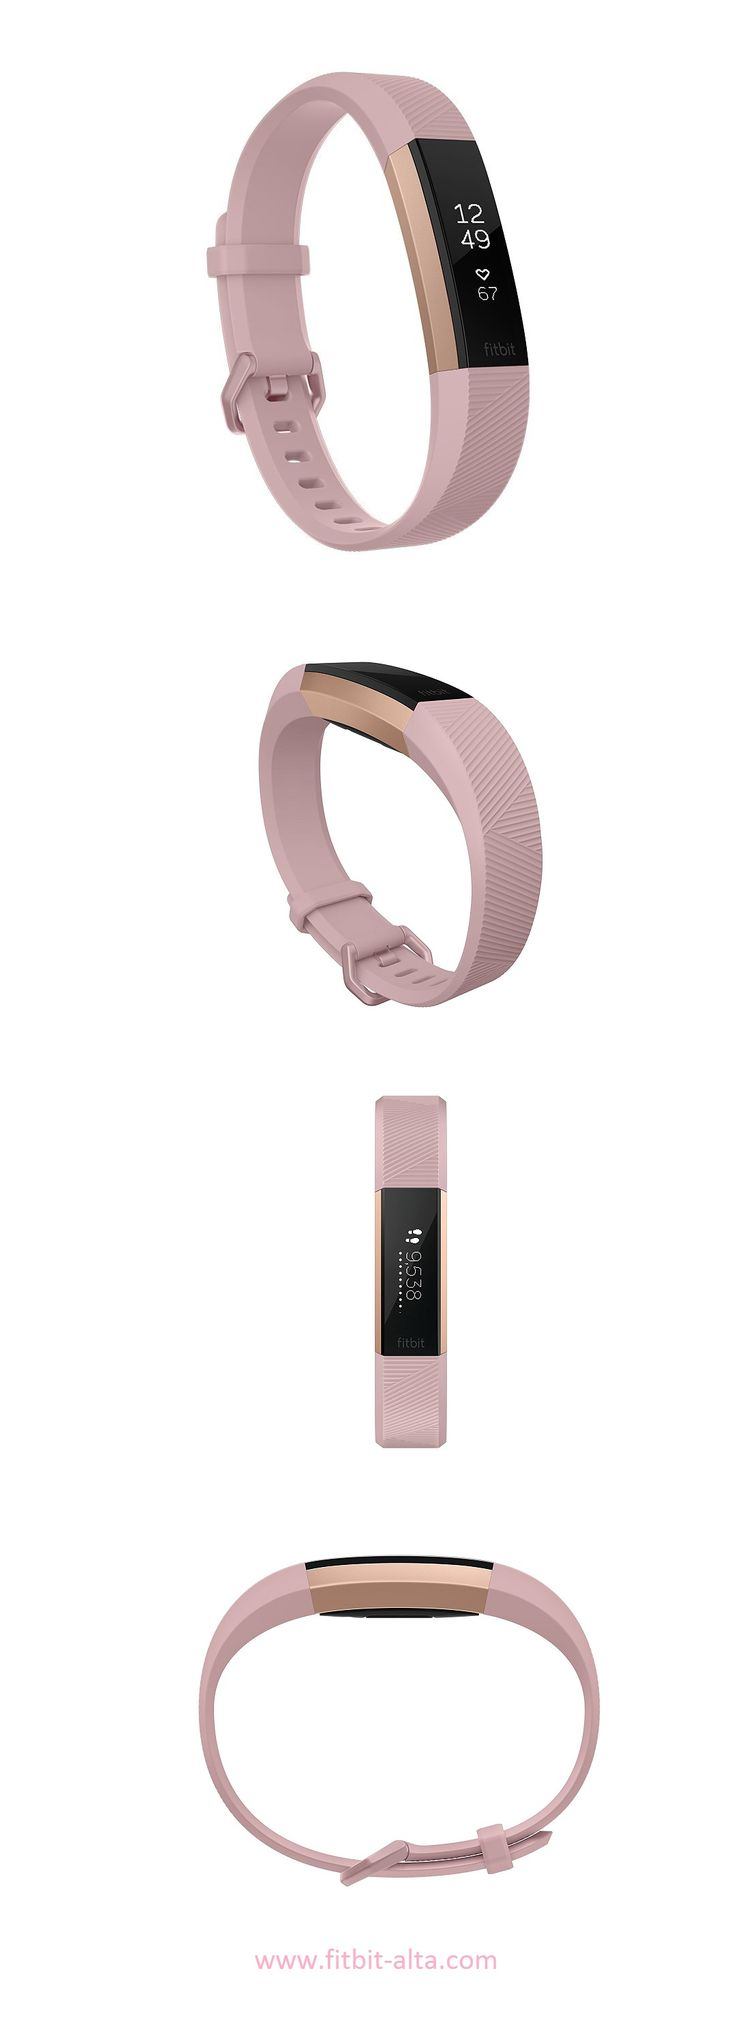 My Friends Told Me About You / Guide fitbit bands alta best buy